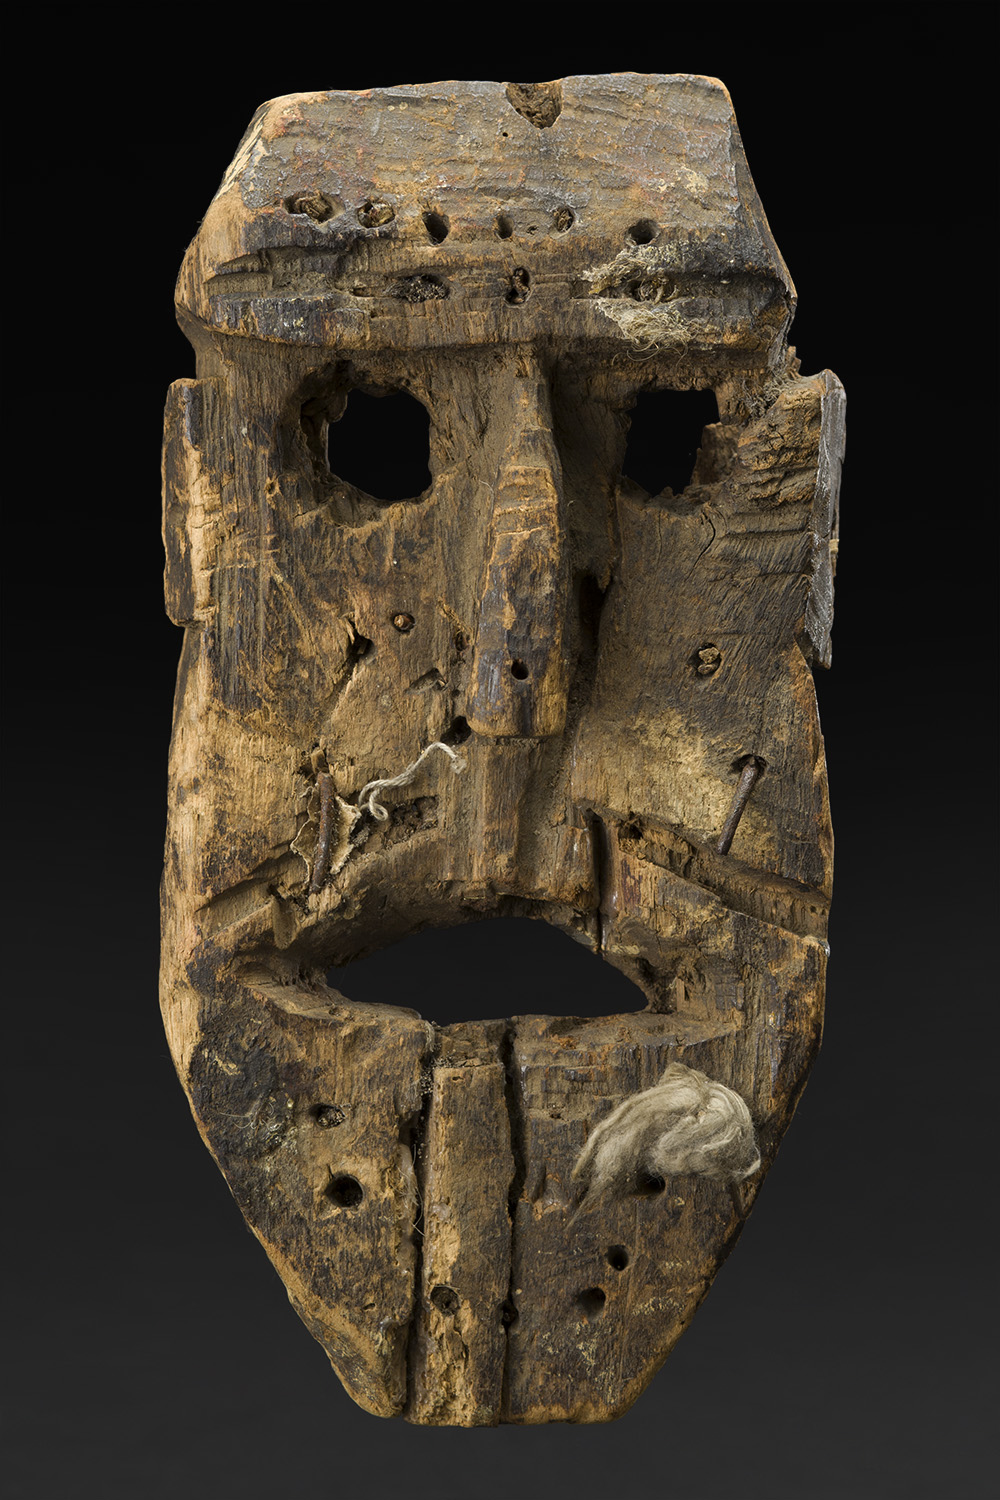 Masks    Nepal  , Late 19th or early 20th C. Wood 10 x 5.5 x 3 inches 25.4 x 14 x 7.6 cm M 222s